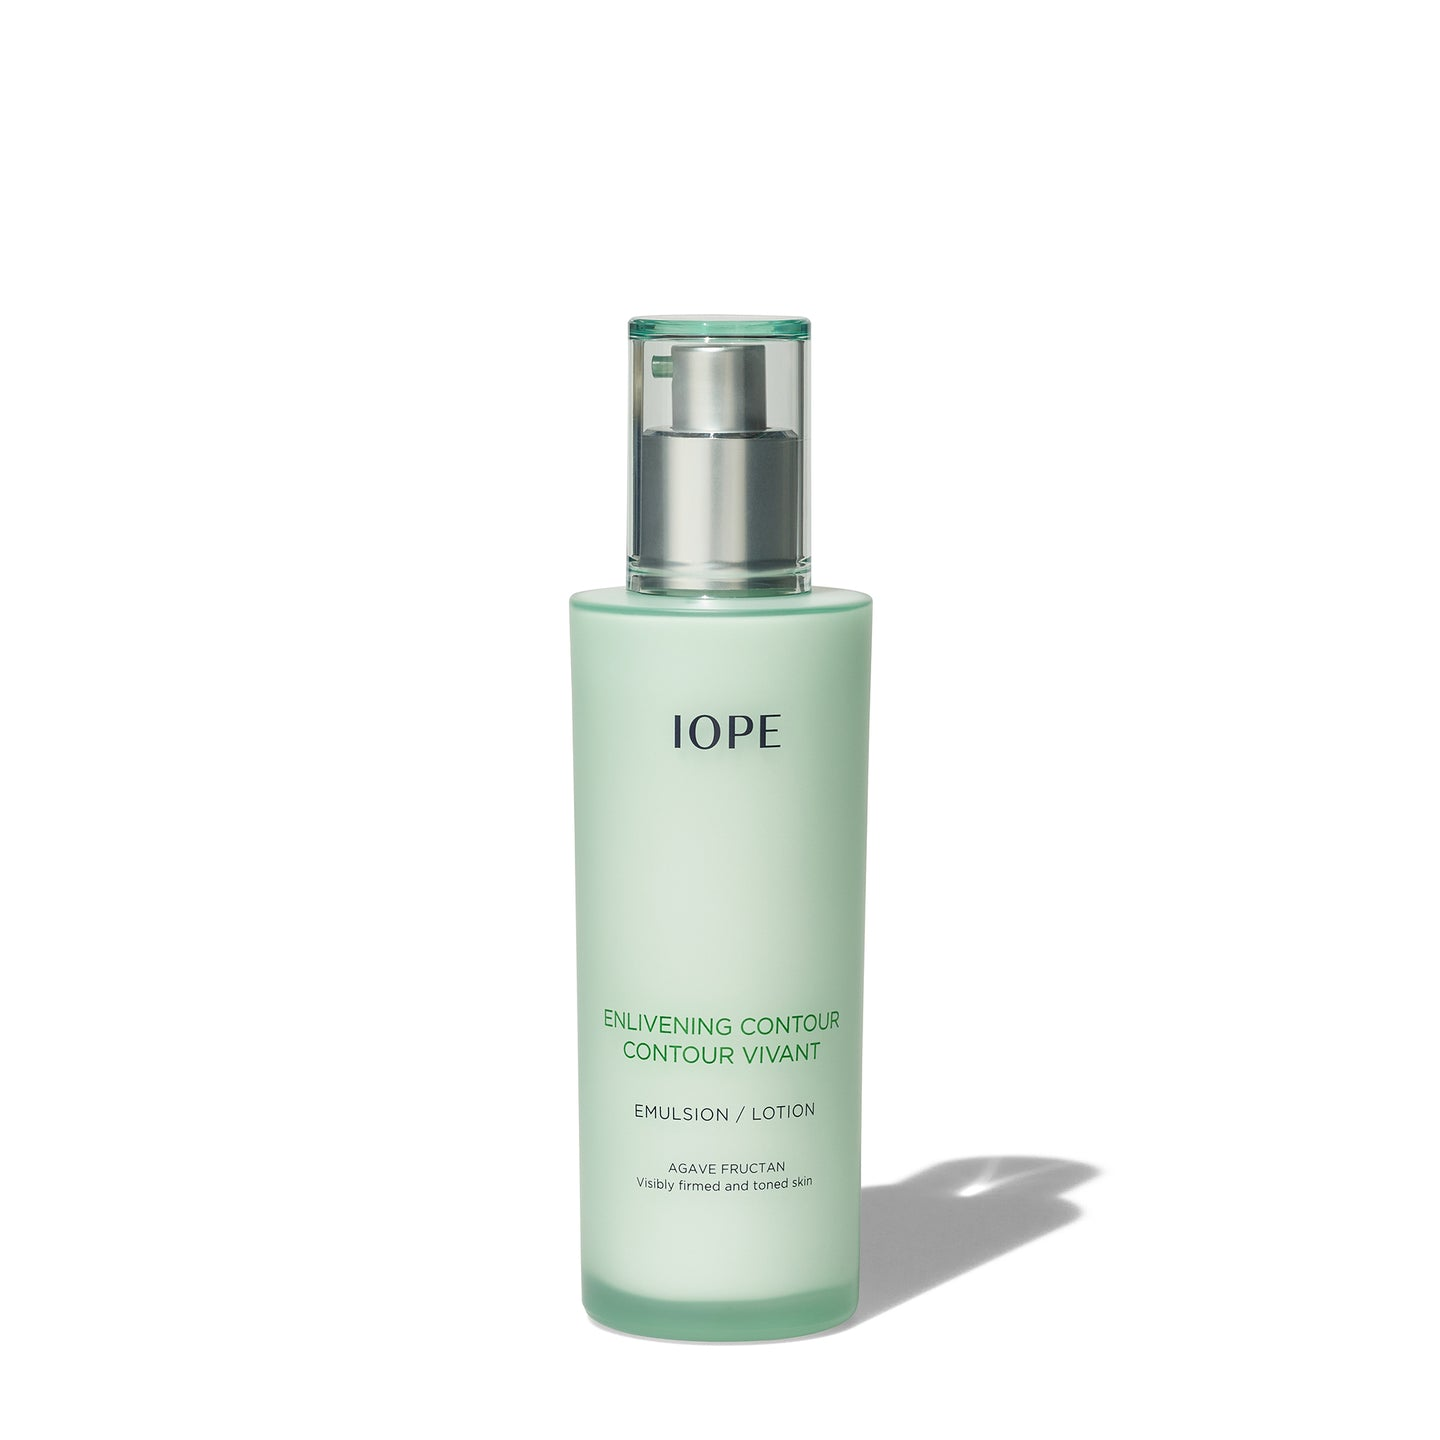 IOPE<br>Enlivening Contour Emulsion